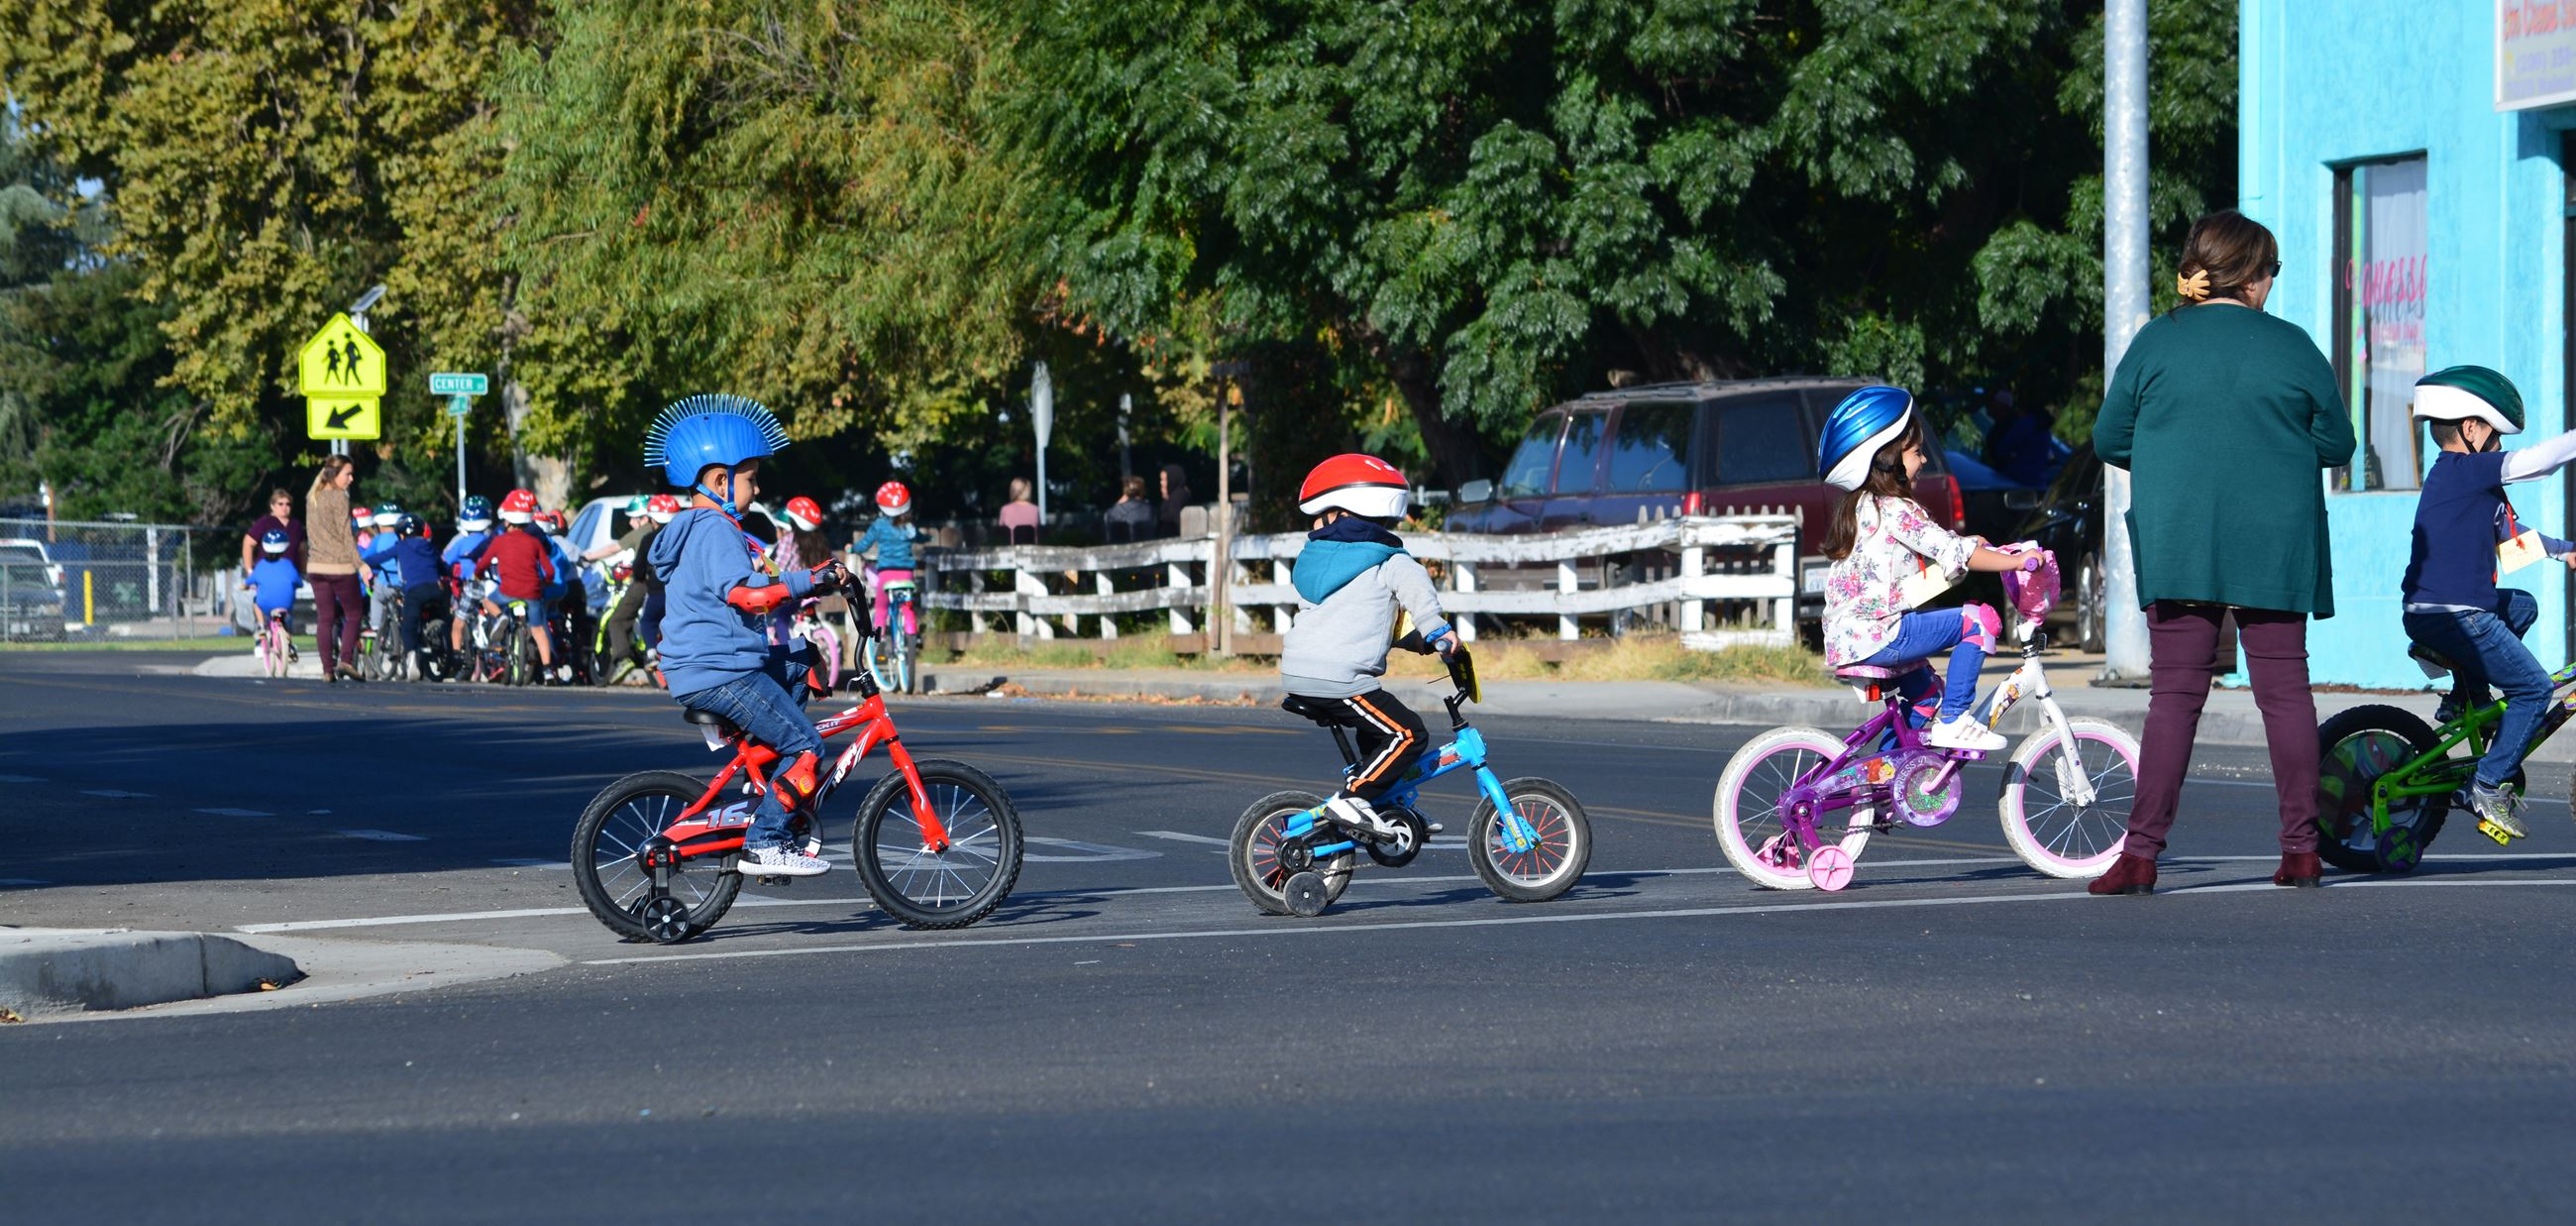 Kids Riding Bikes in a Line